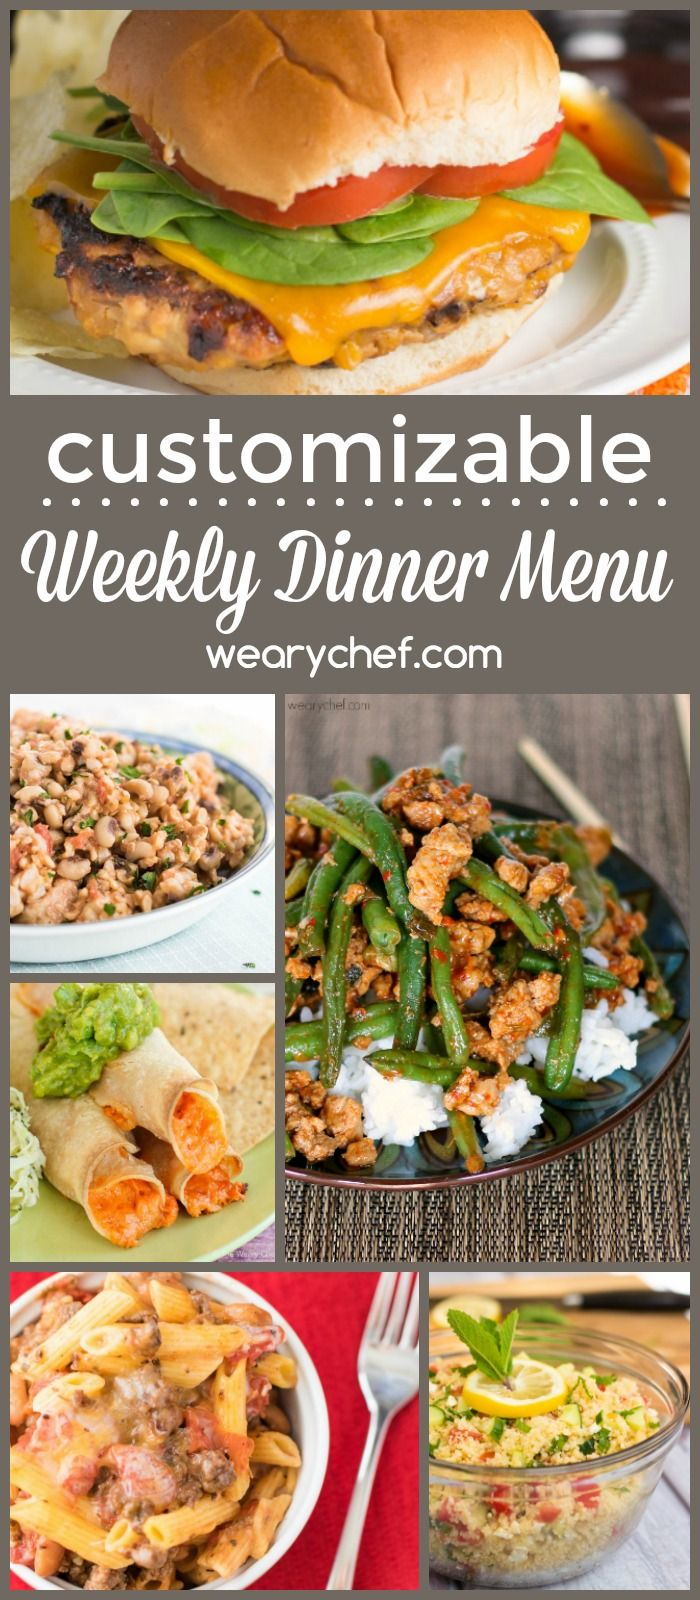 Best The Weary Chef Menu Plans Images On   Weekly